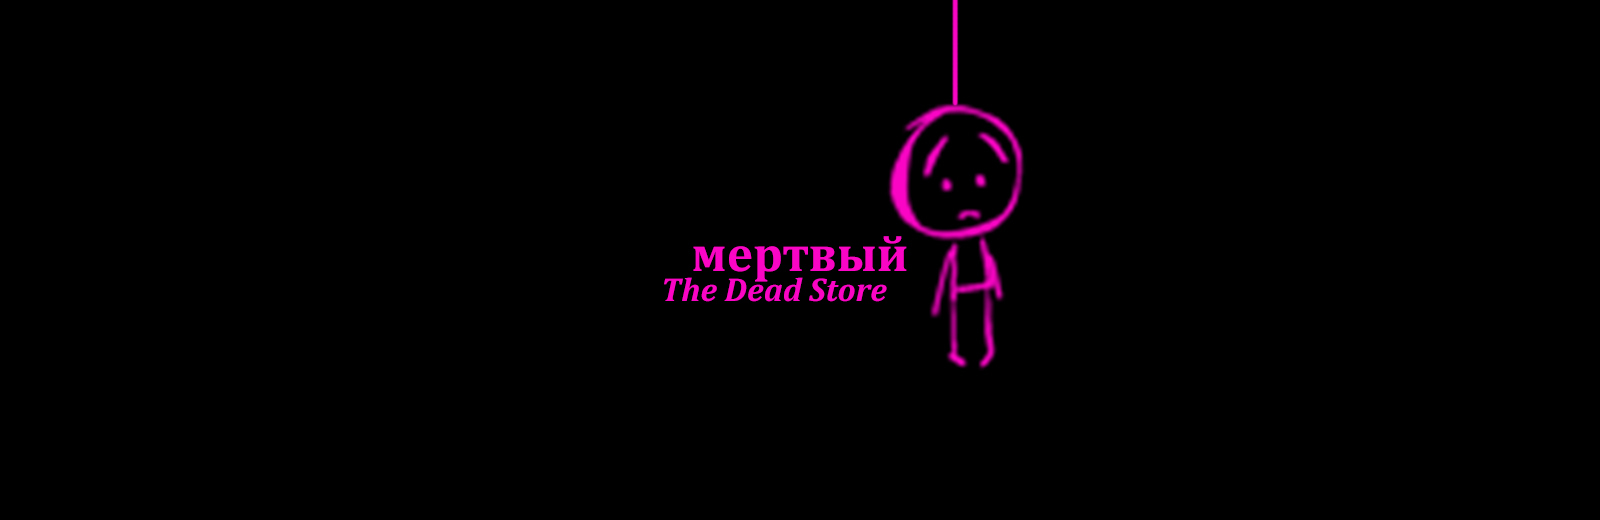 TheDeadStore - мертвый Store